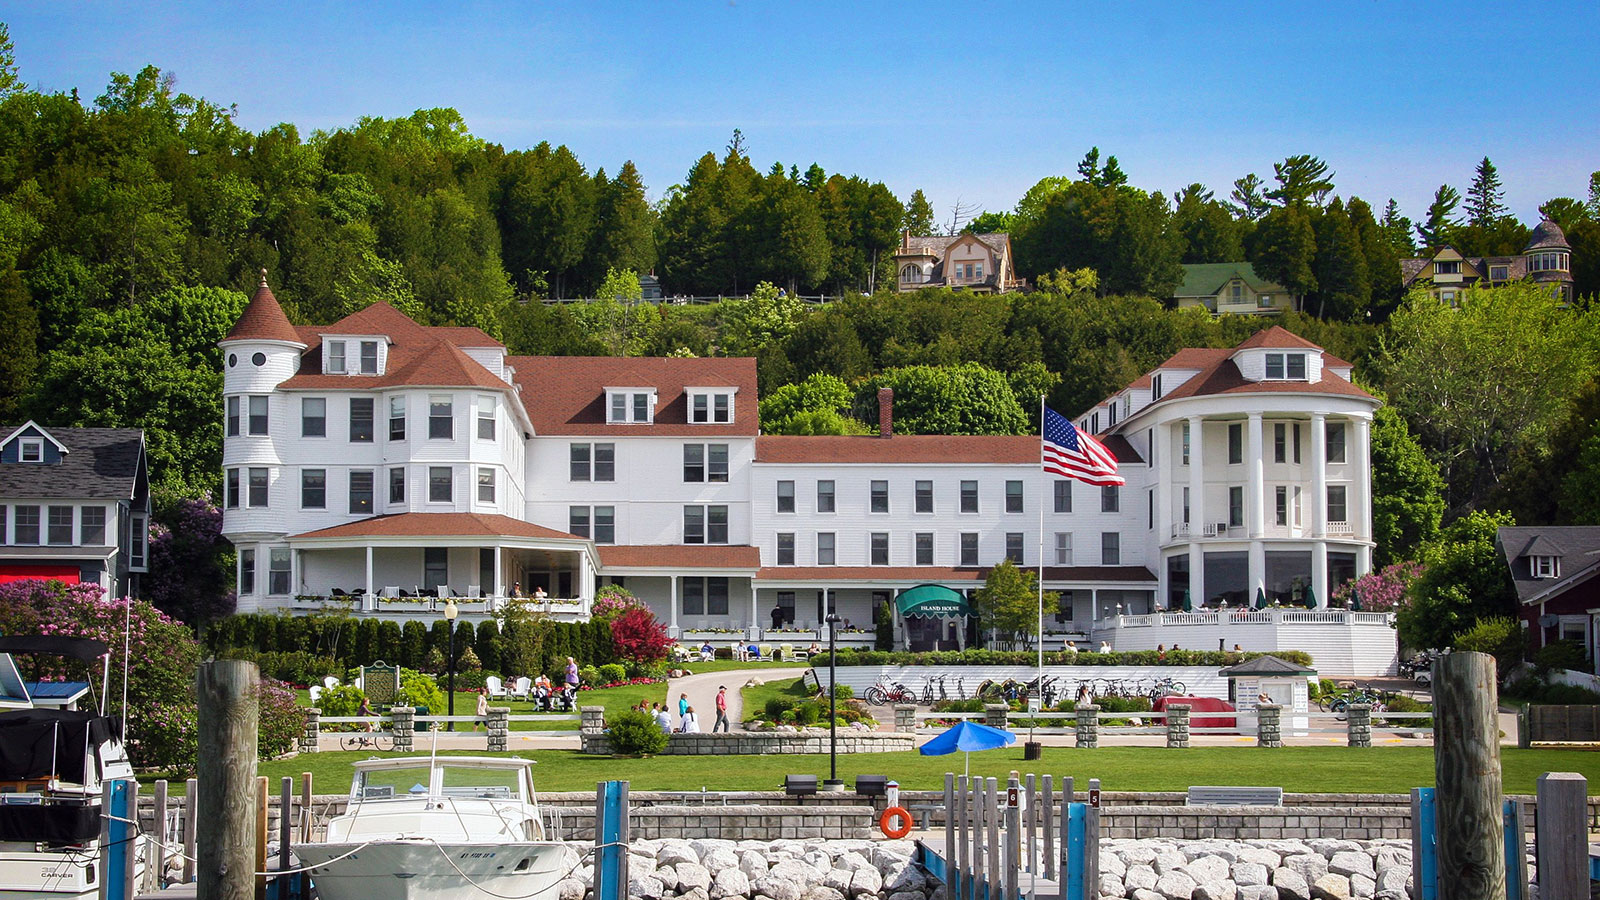 Image of Exterior and Marina, Island House Hotel in Mackinac Island, Michigan, 1852Member of Historic Hotels of America, Overview